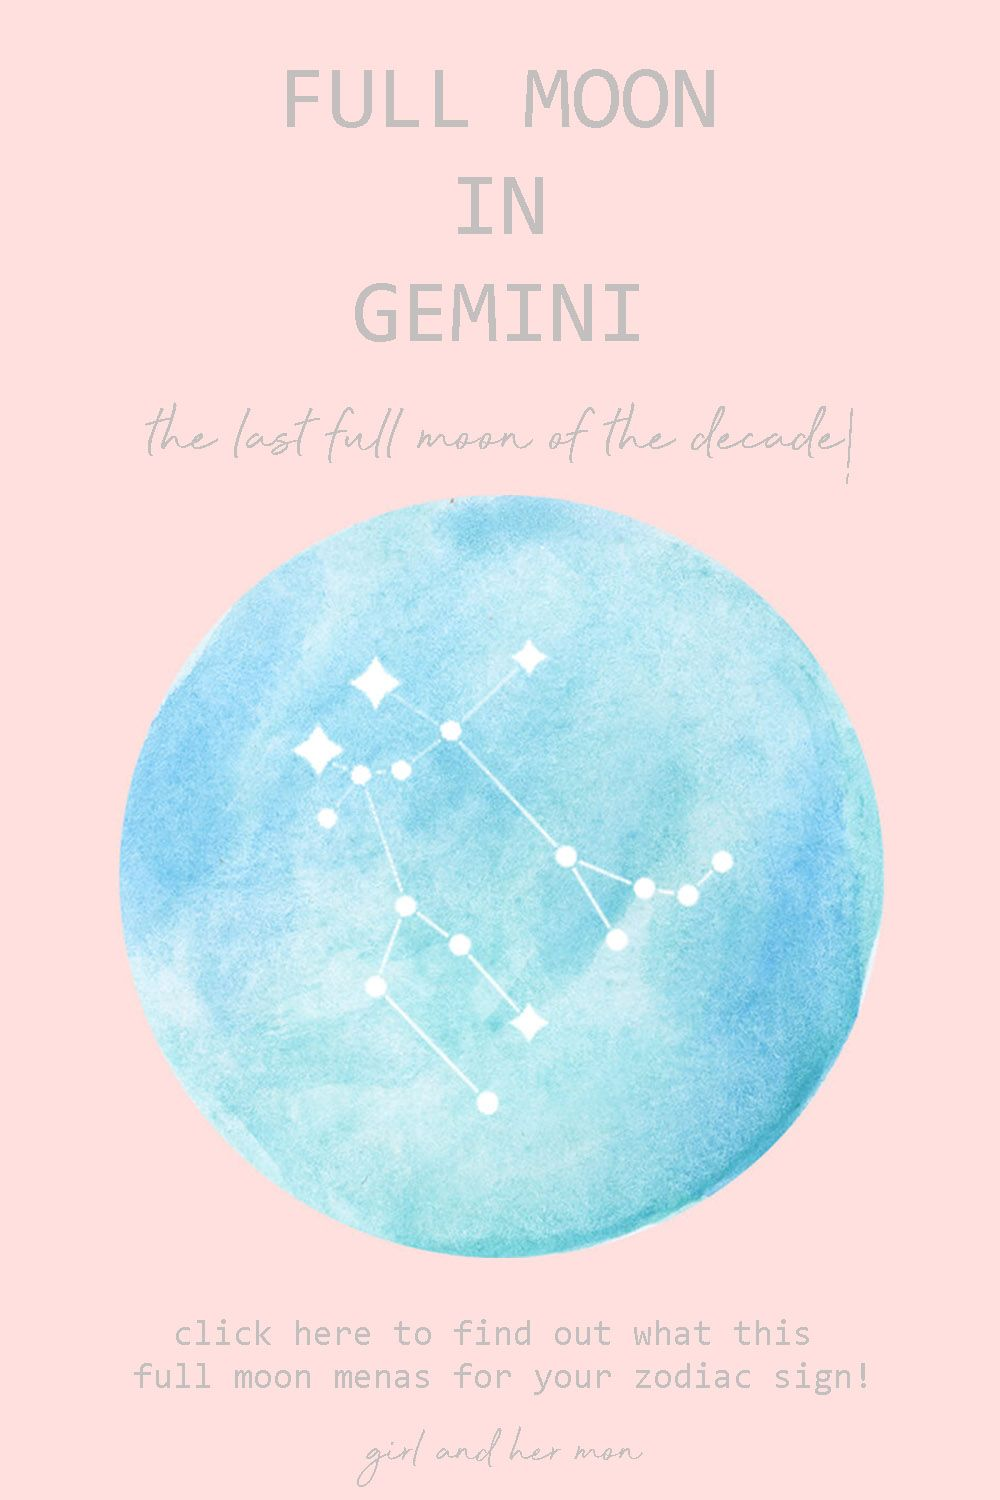 Finding warmth in the gemini full moon this december 2019